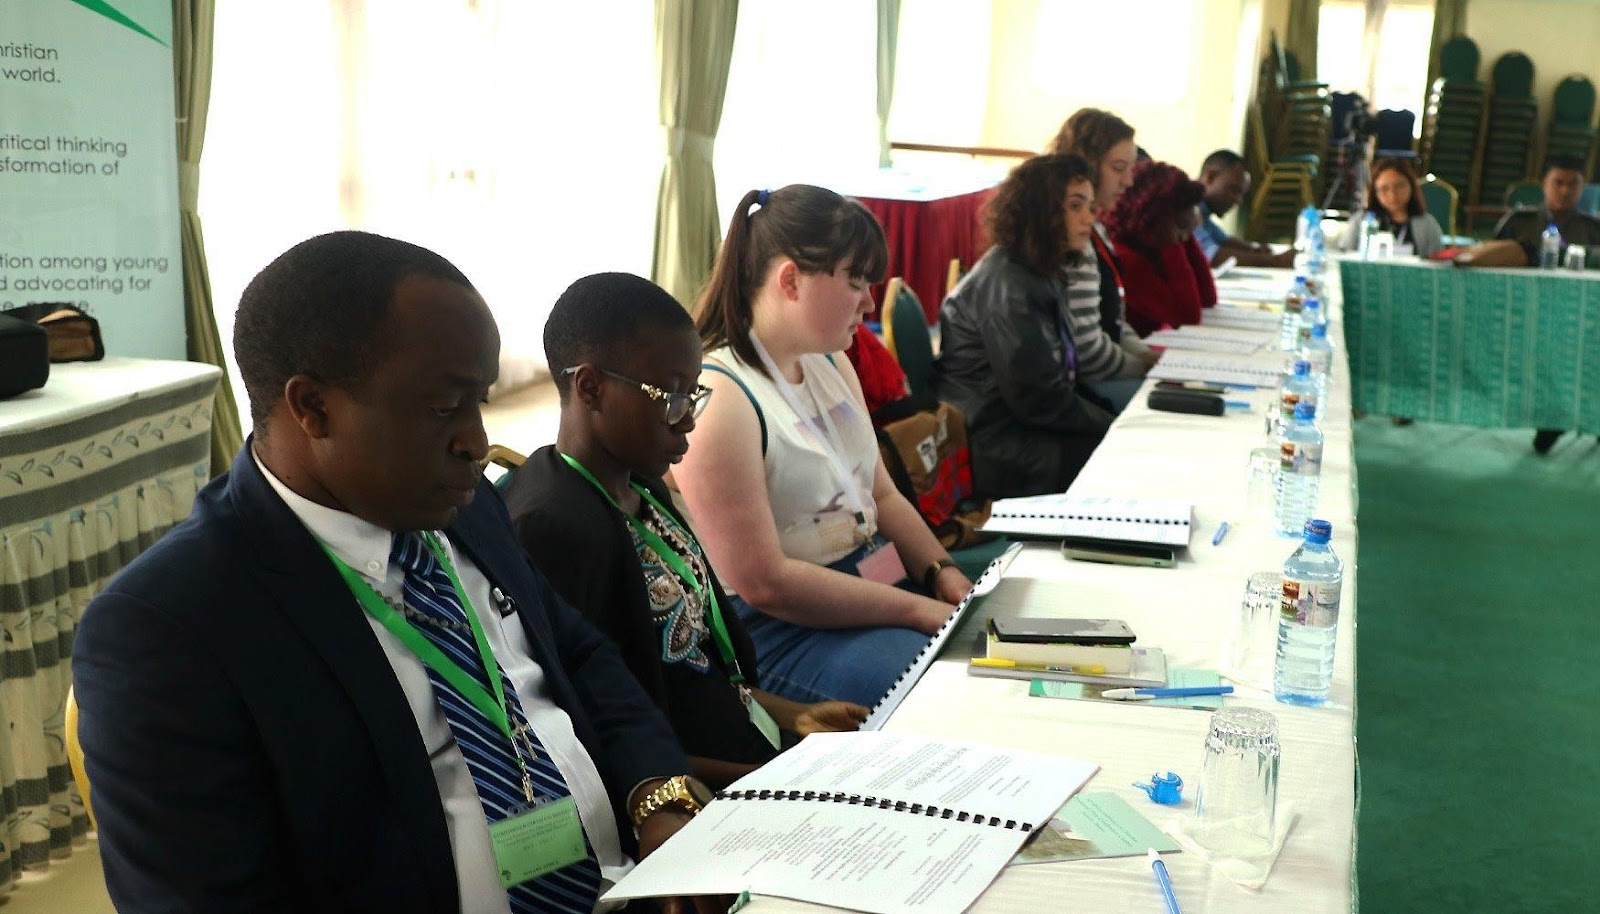 July 2019, Caity Cameron our delegate for WSCF IDD program in Kenya, Africa.  First time for her to go to Africa and also the first time WSCF held a program on identity, diversity and dialogue in Africa.